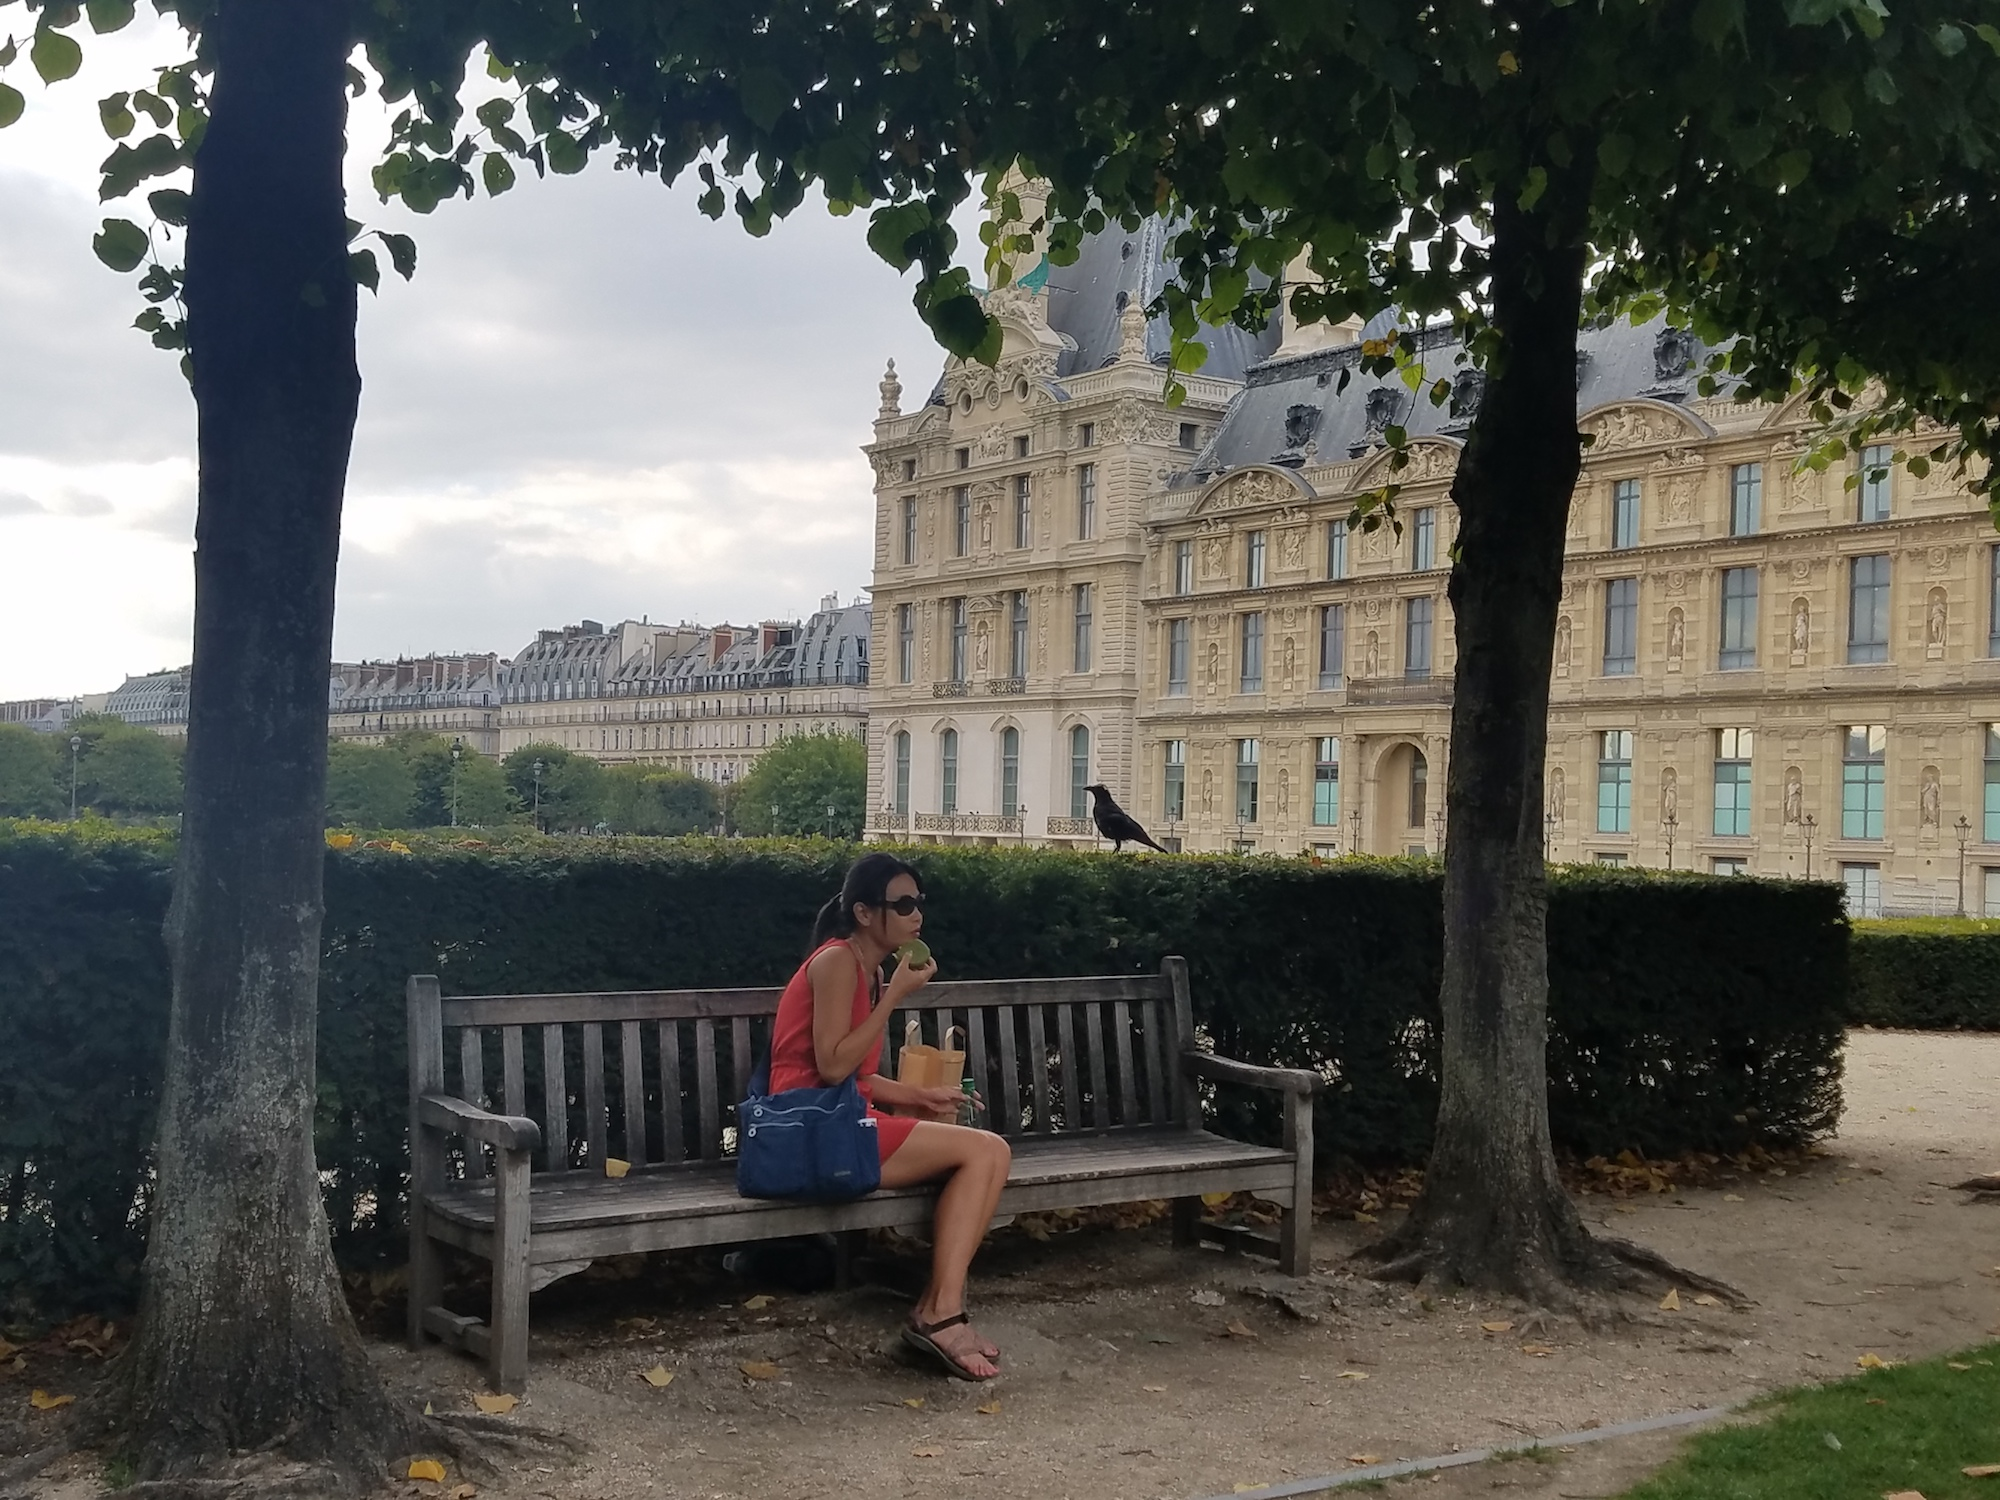 neatpack crossbody bag Enjoying macaroon at park bend by The Louvre